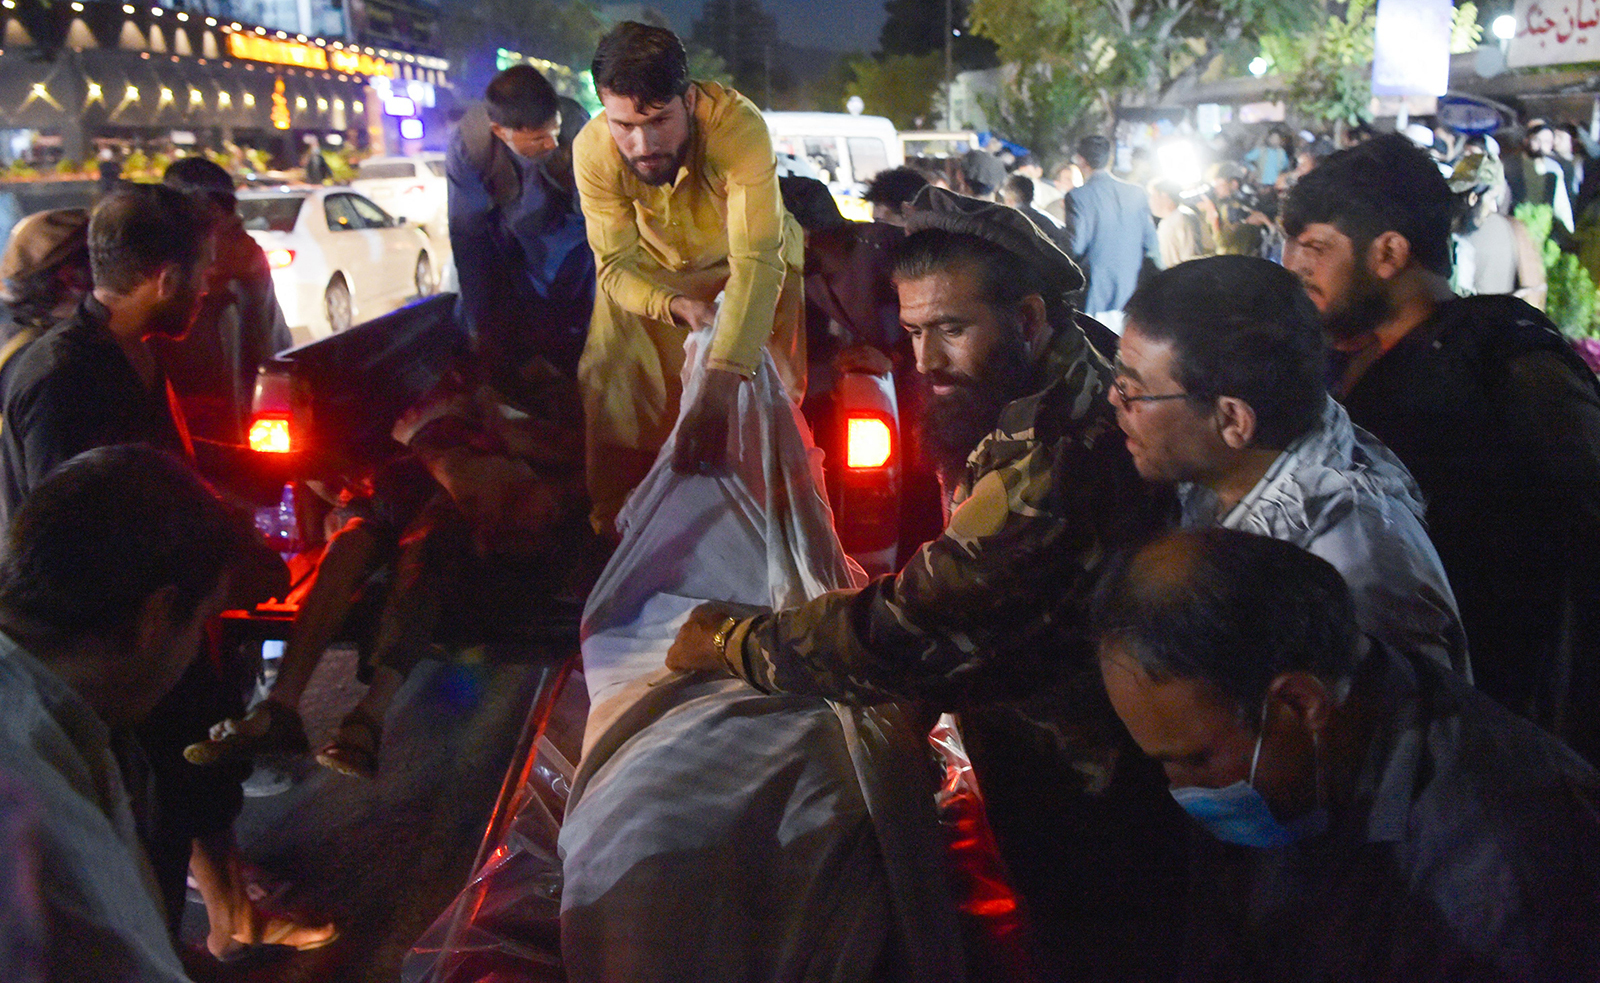 Volunteers and medical staff unload bodies from a pickup truck outside a hospital after explosions in Kabul on August 26.